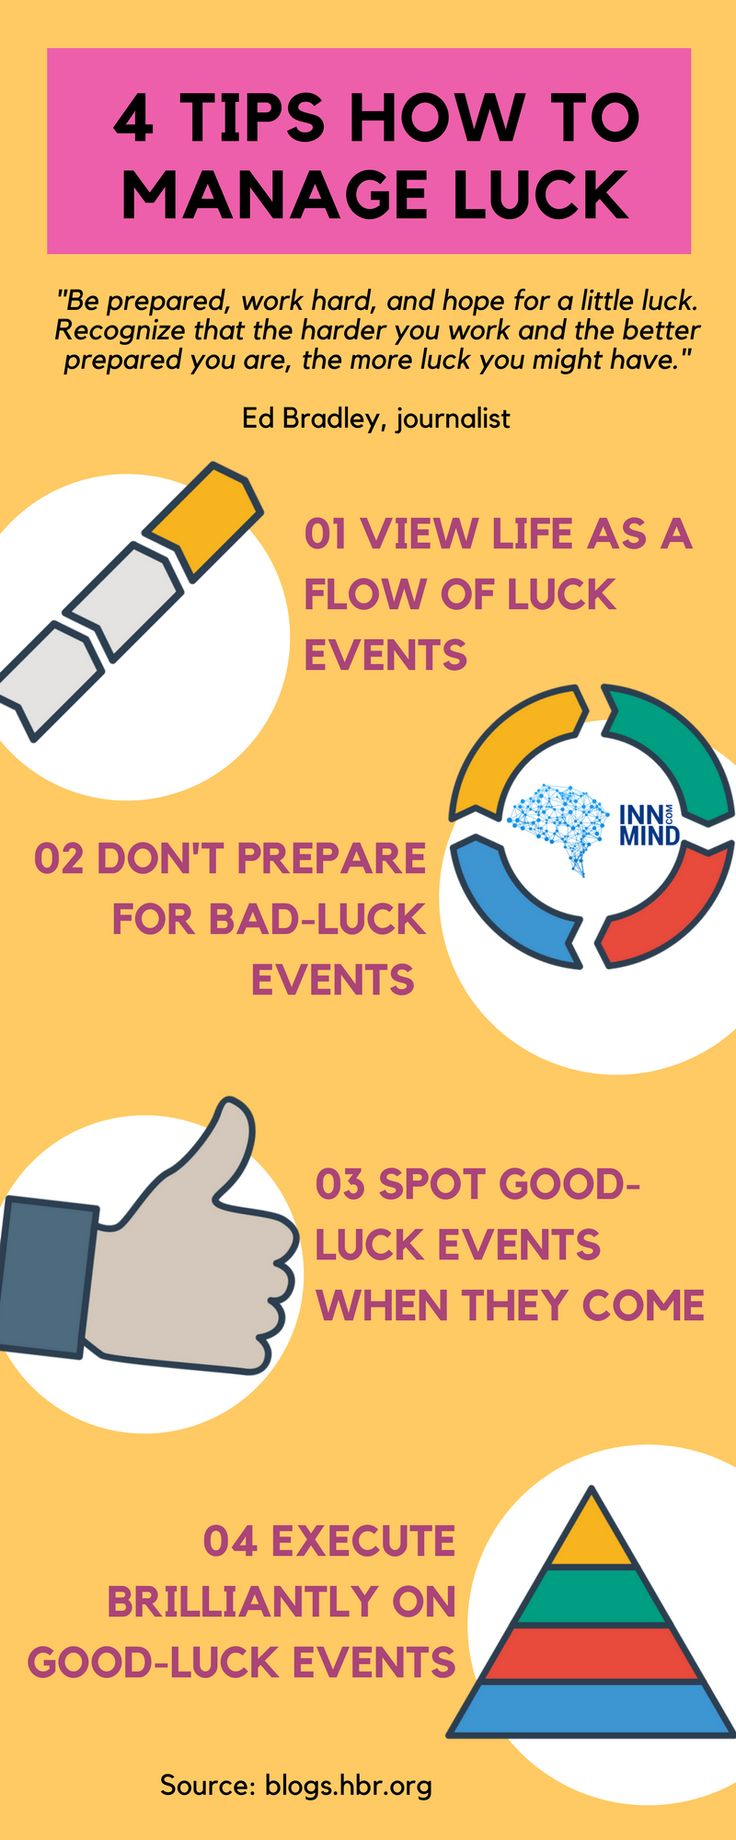 4 tips to manage luck better | InnMind #luck #business #startup